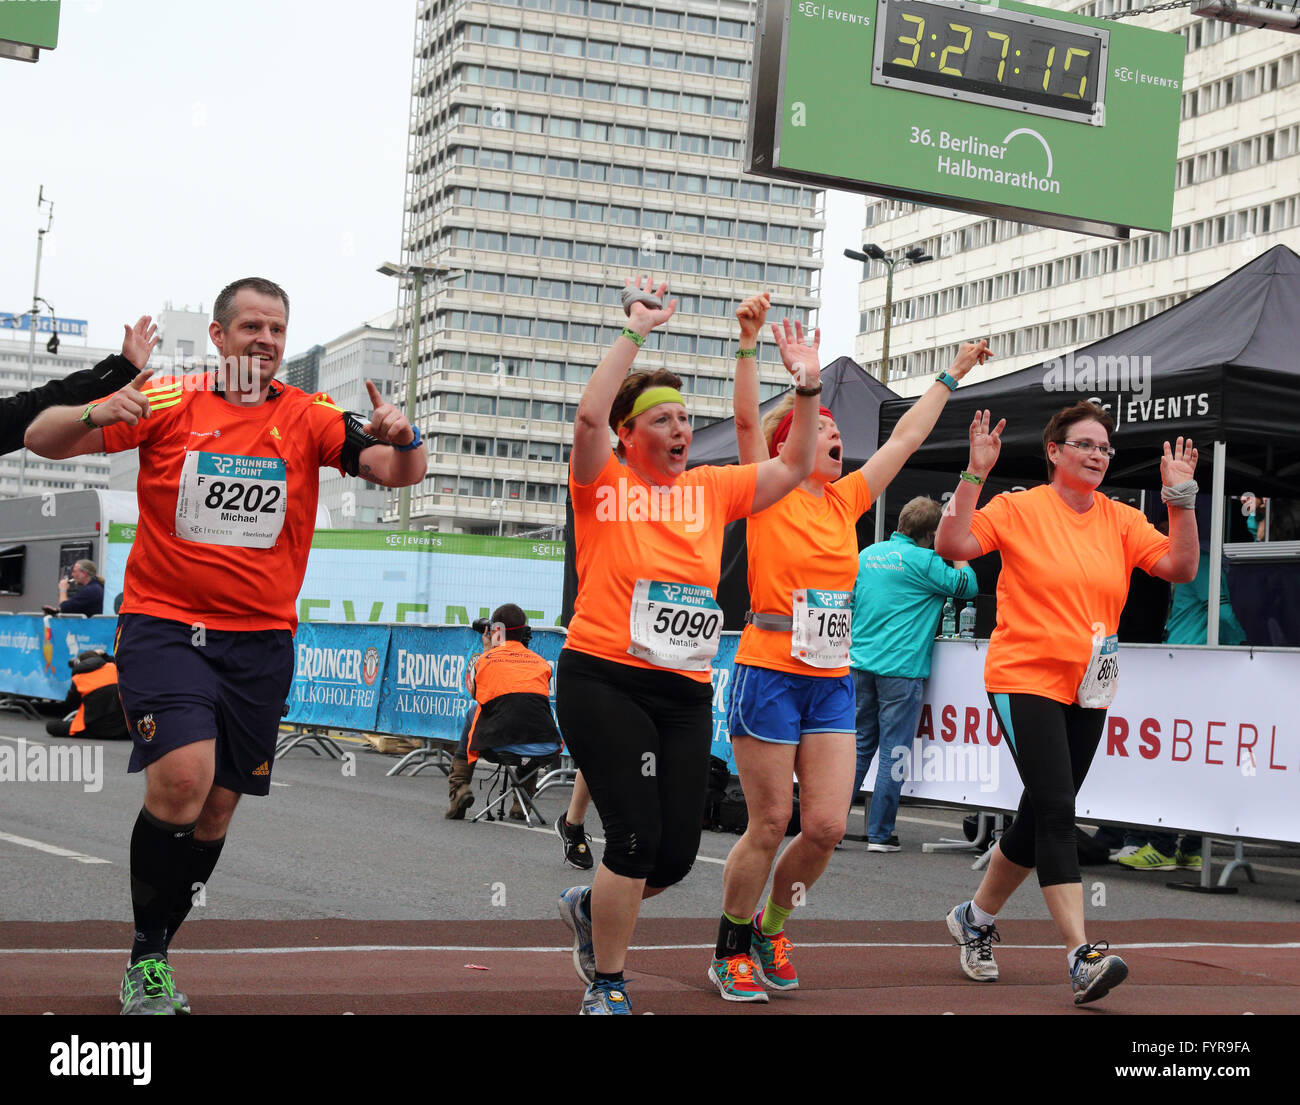 Three women and one man crossing the finish line of the Berlin Half Marathon with arms raised - Stock Image